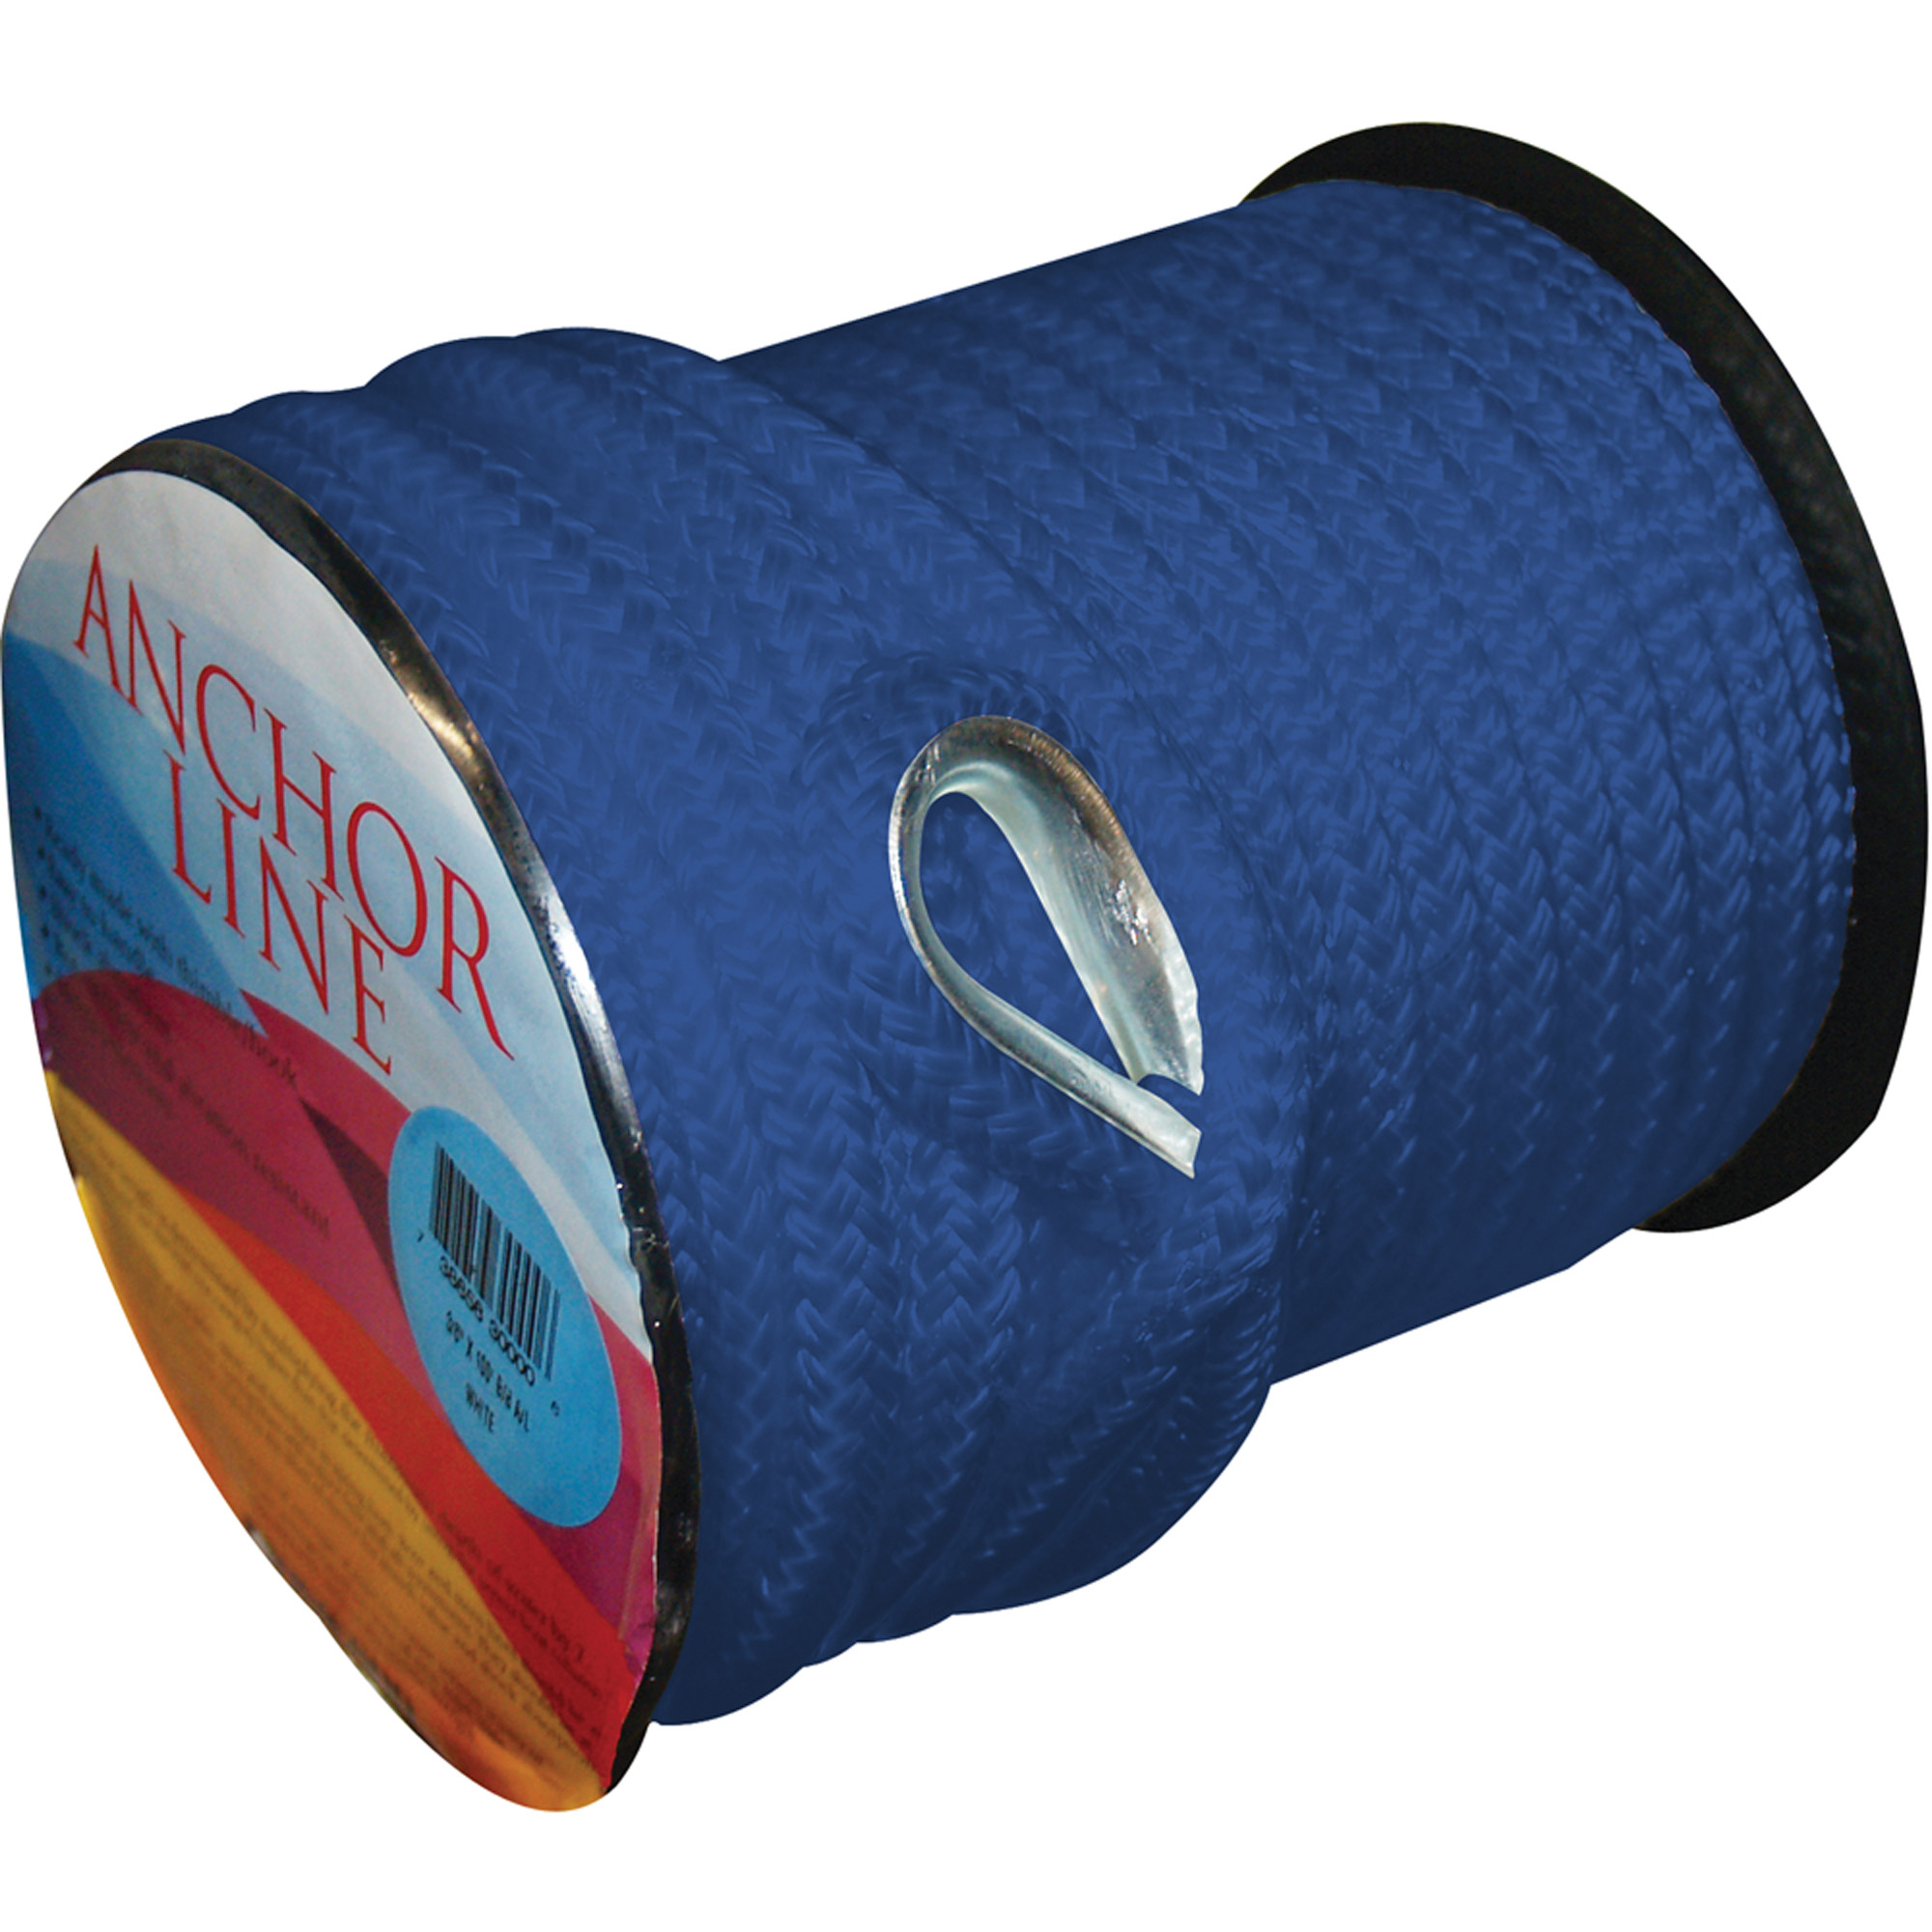 "Unicord 3/8"" x 100' Braided Nylon Anchor Line with Thimble, Royal Blue"